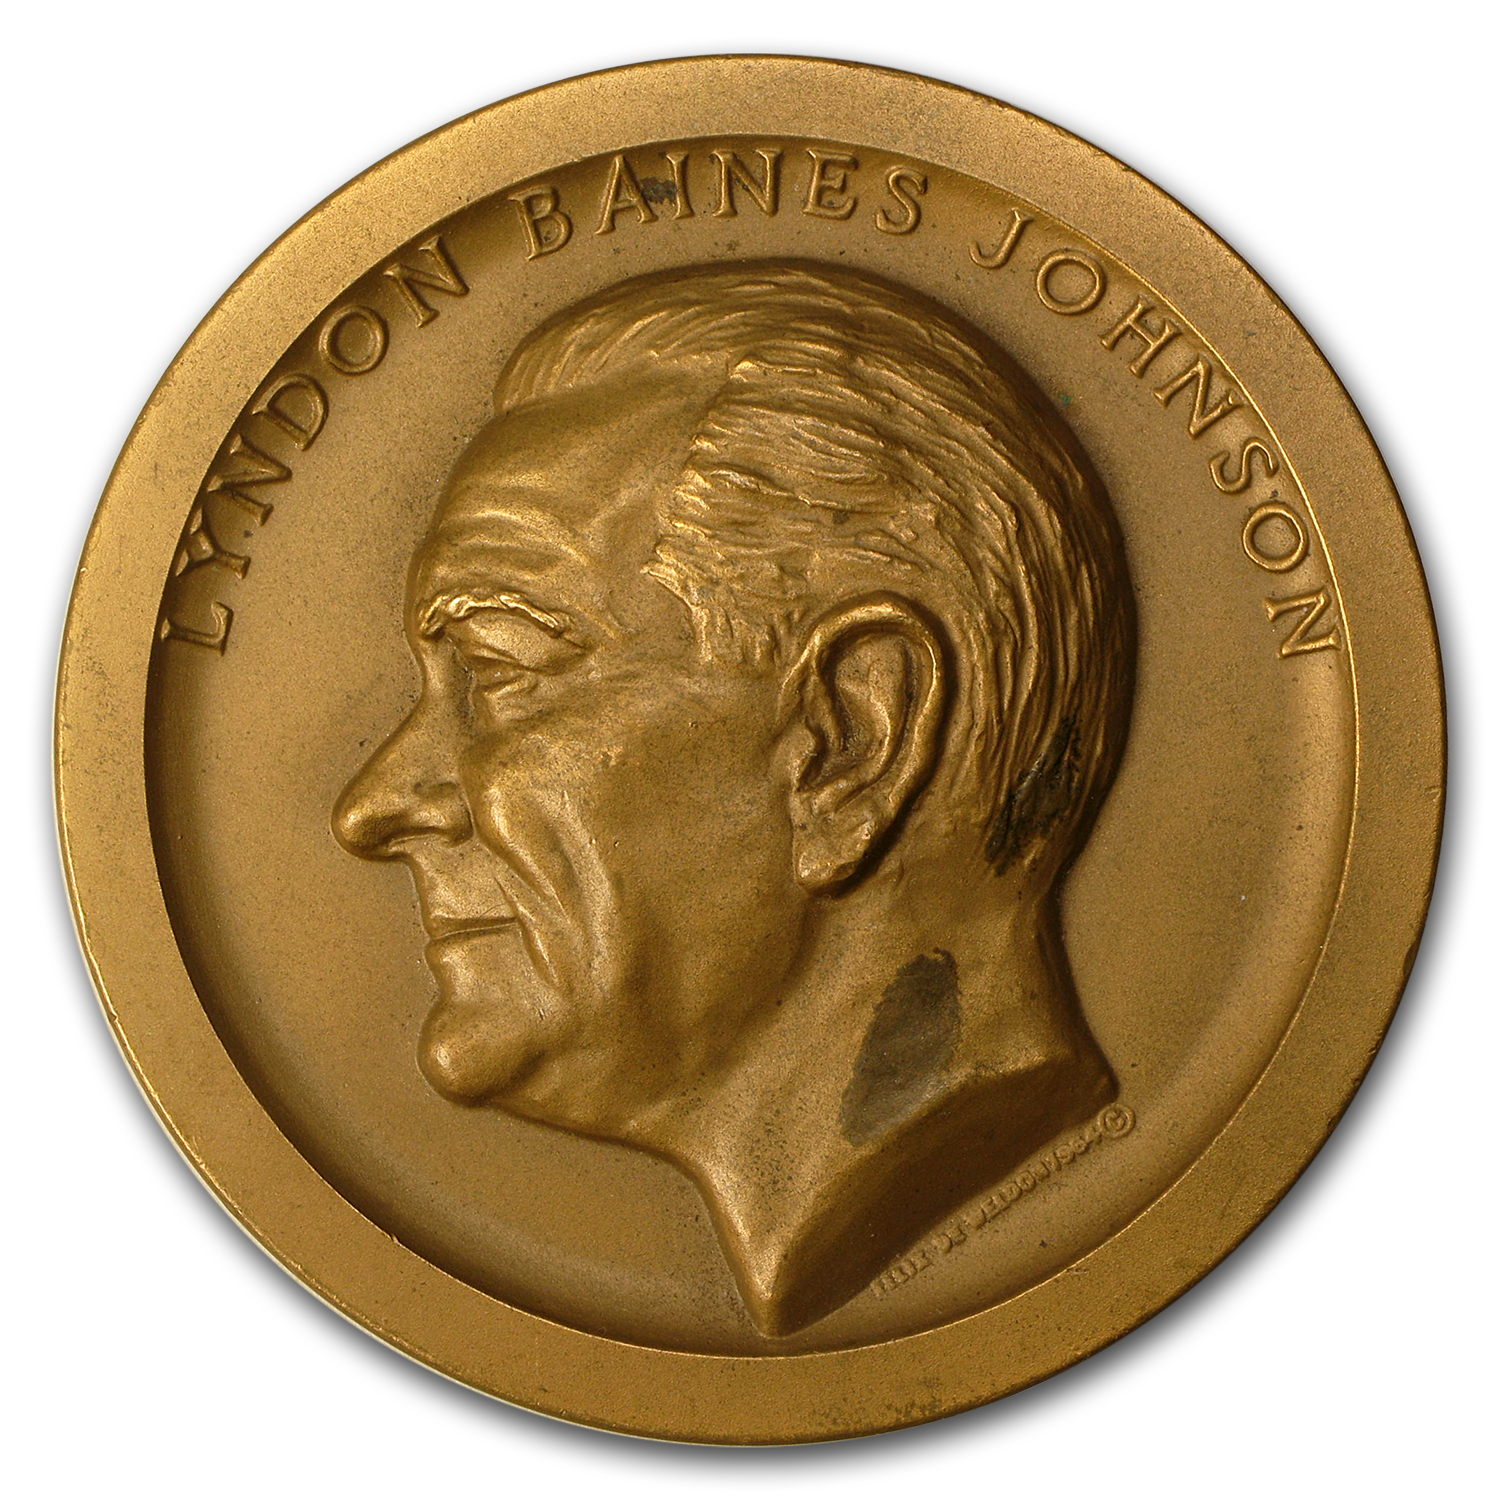 1965 Lyndon B. Johnson Presidential Inaugural Medal